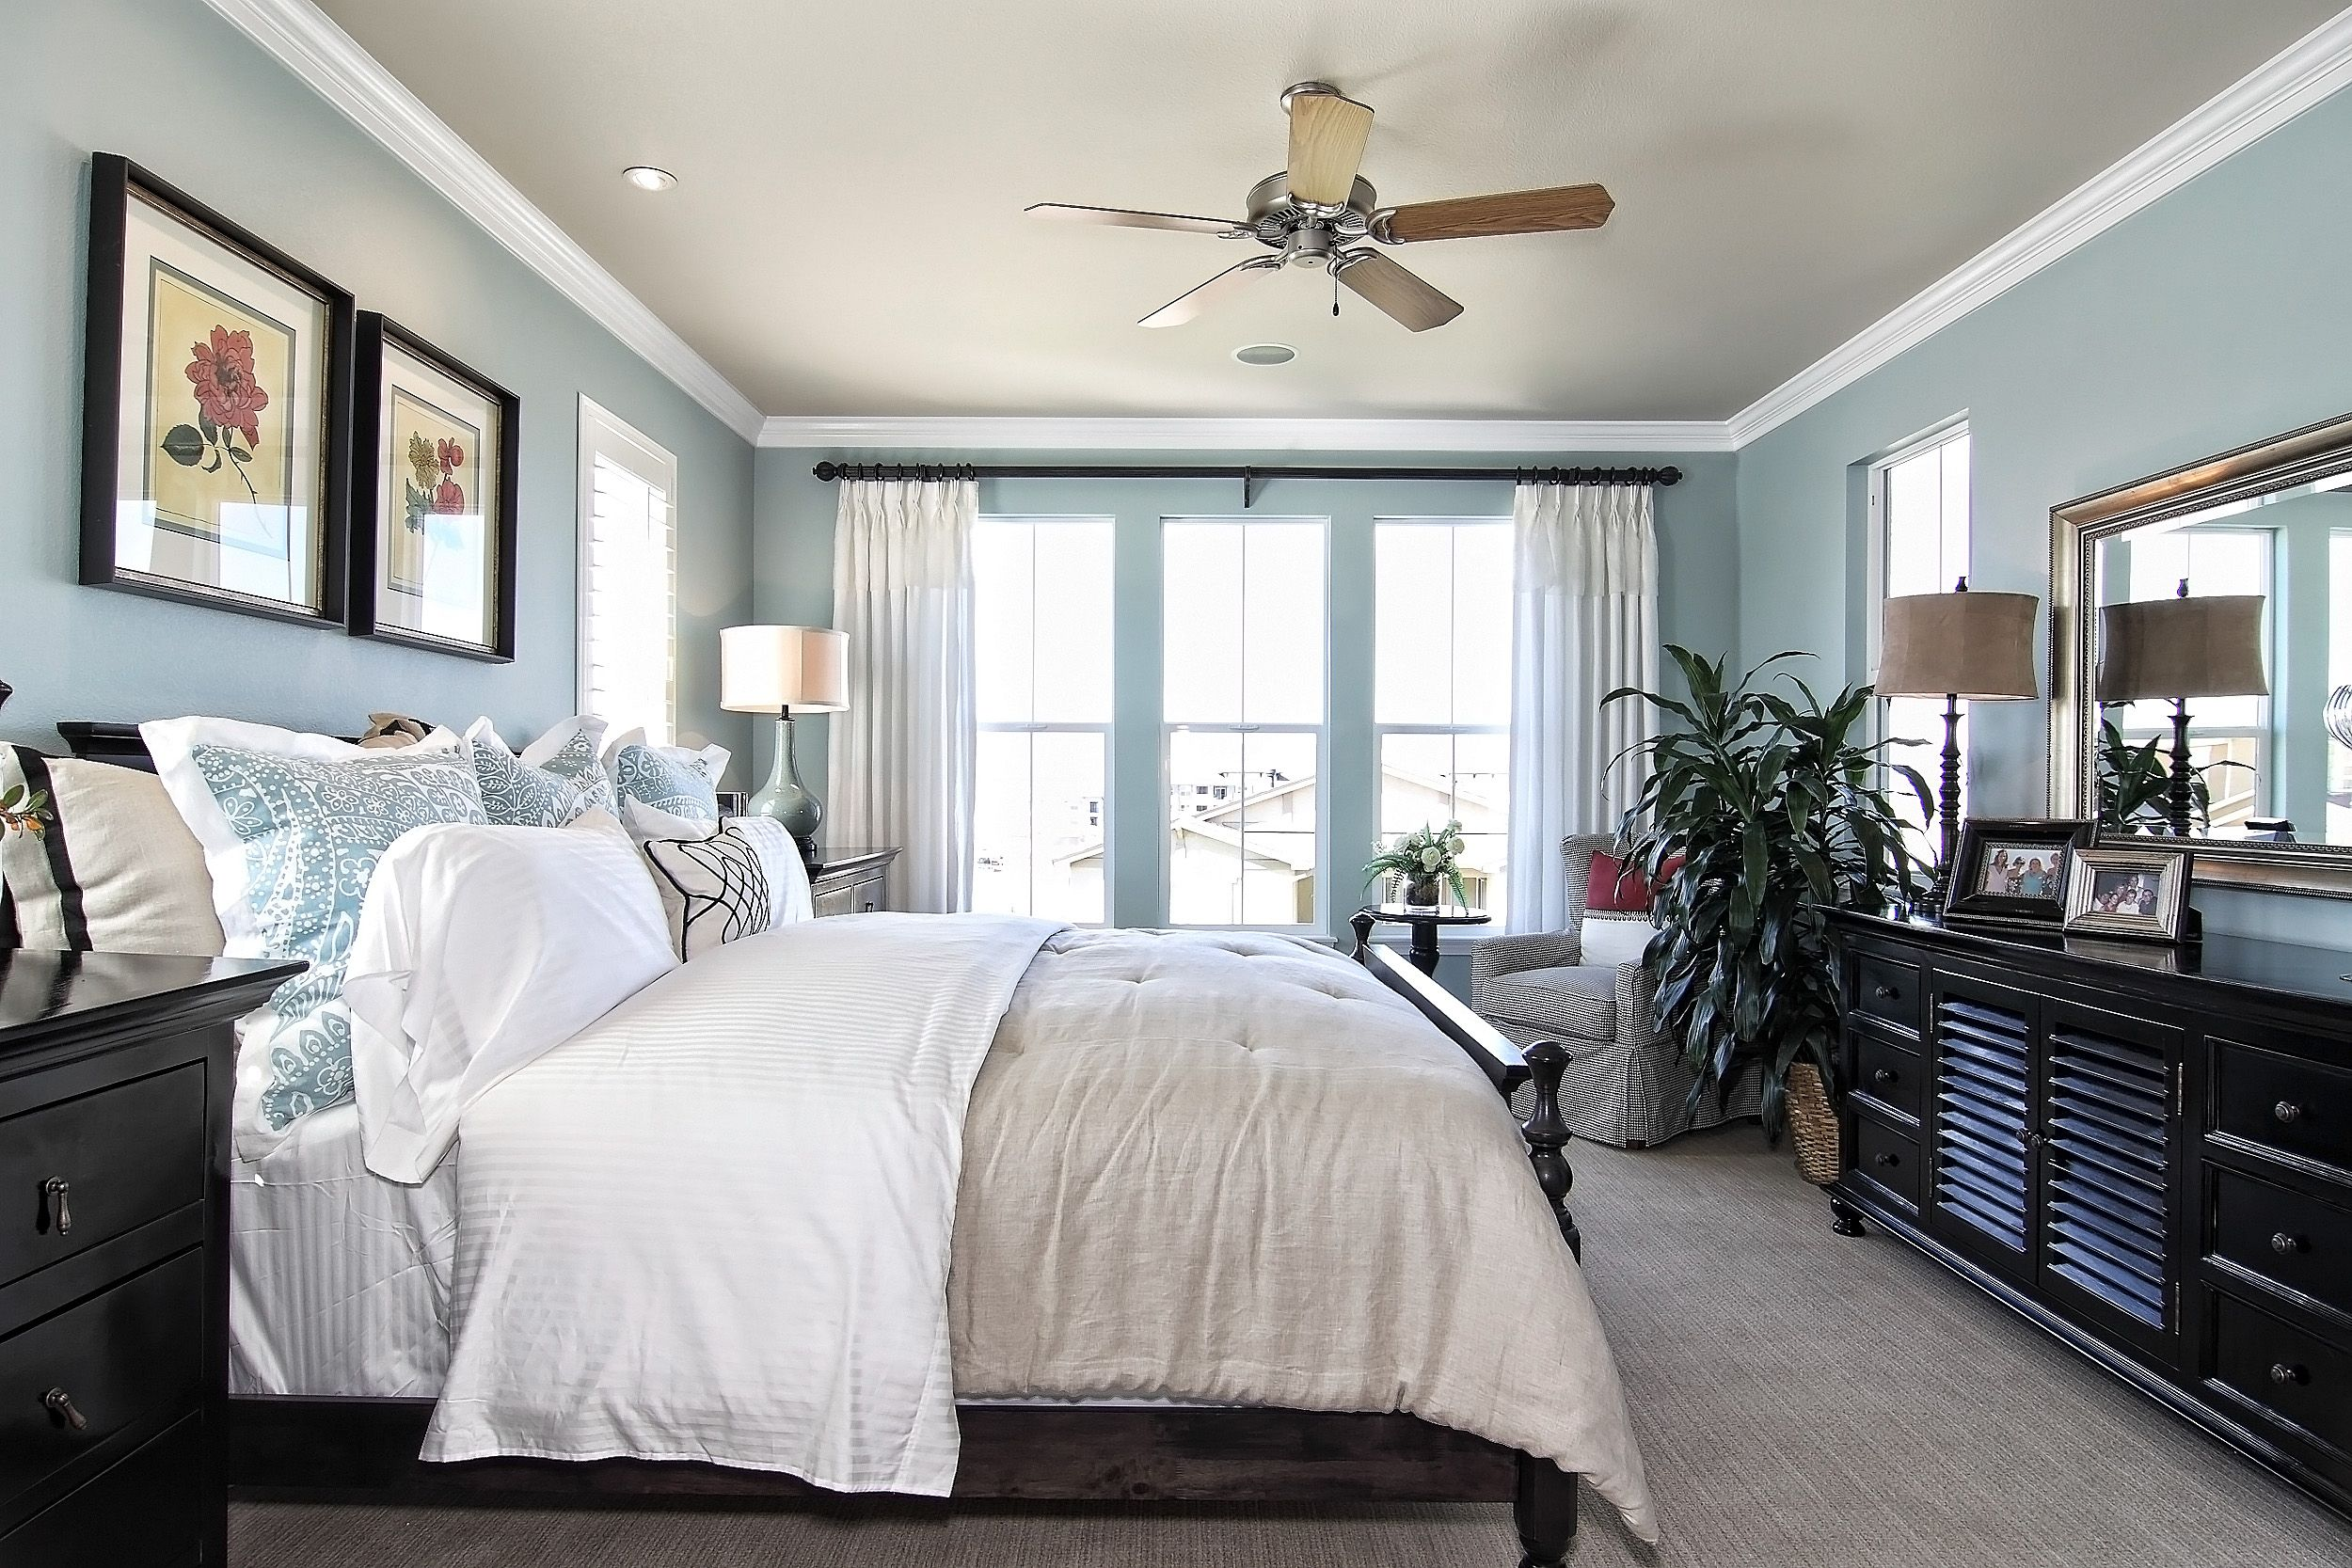 Blue Master Bedroom Design black bedroom ideas, inspiration for master bedroom designs